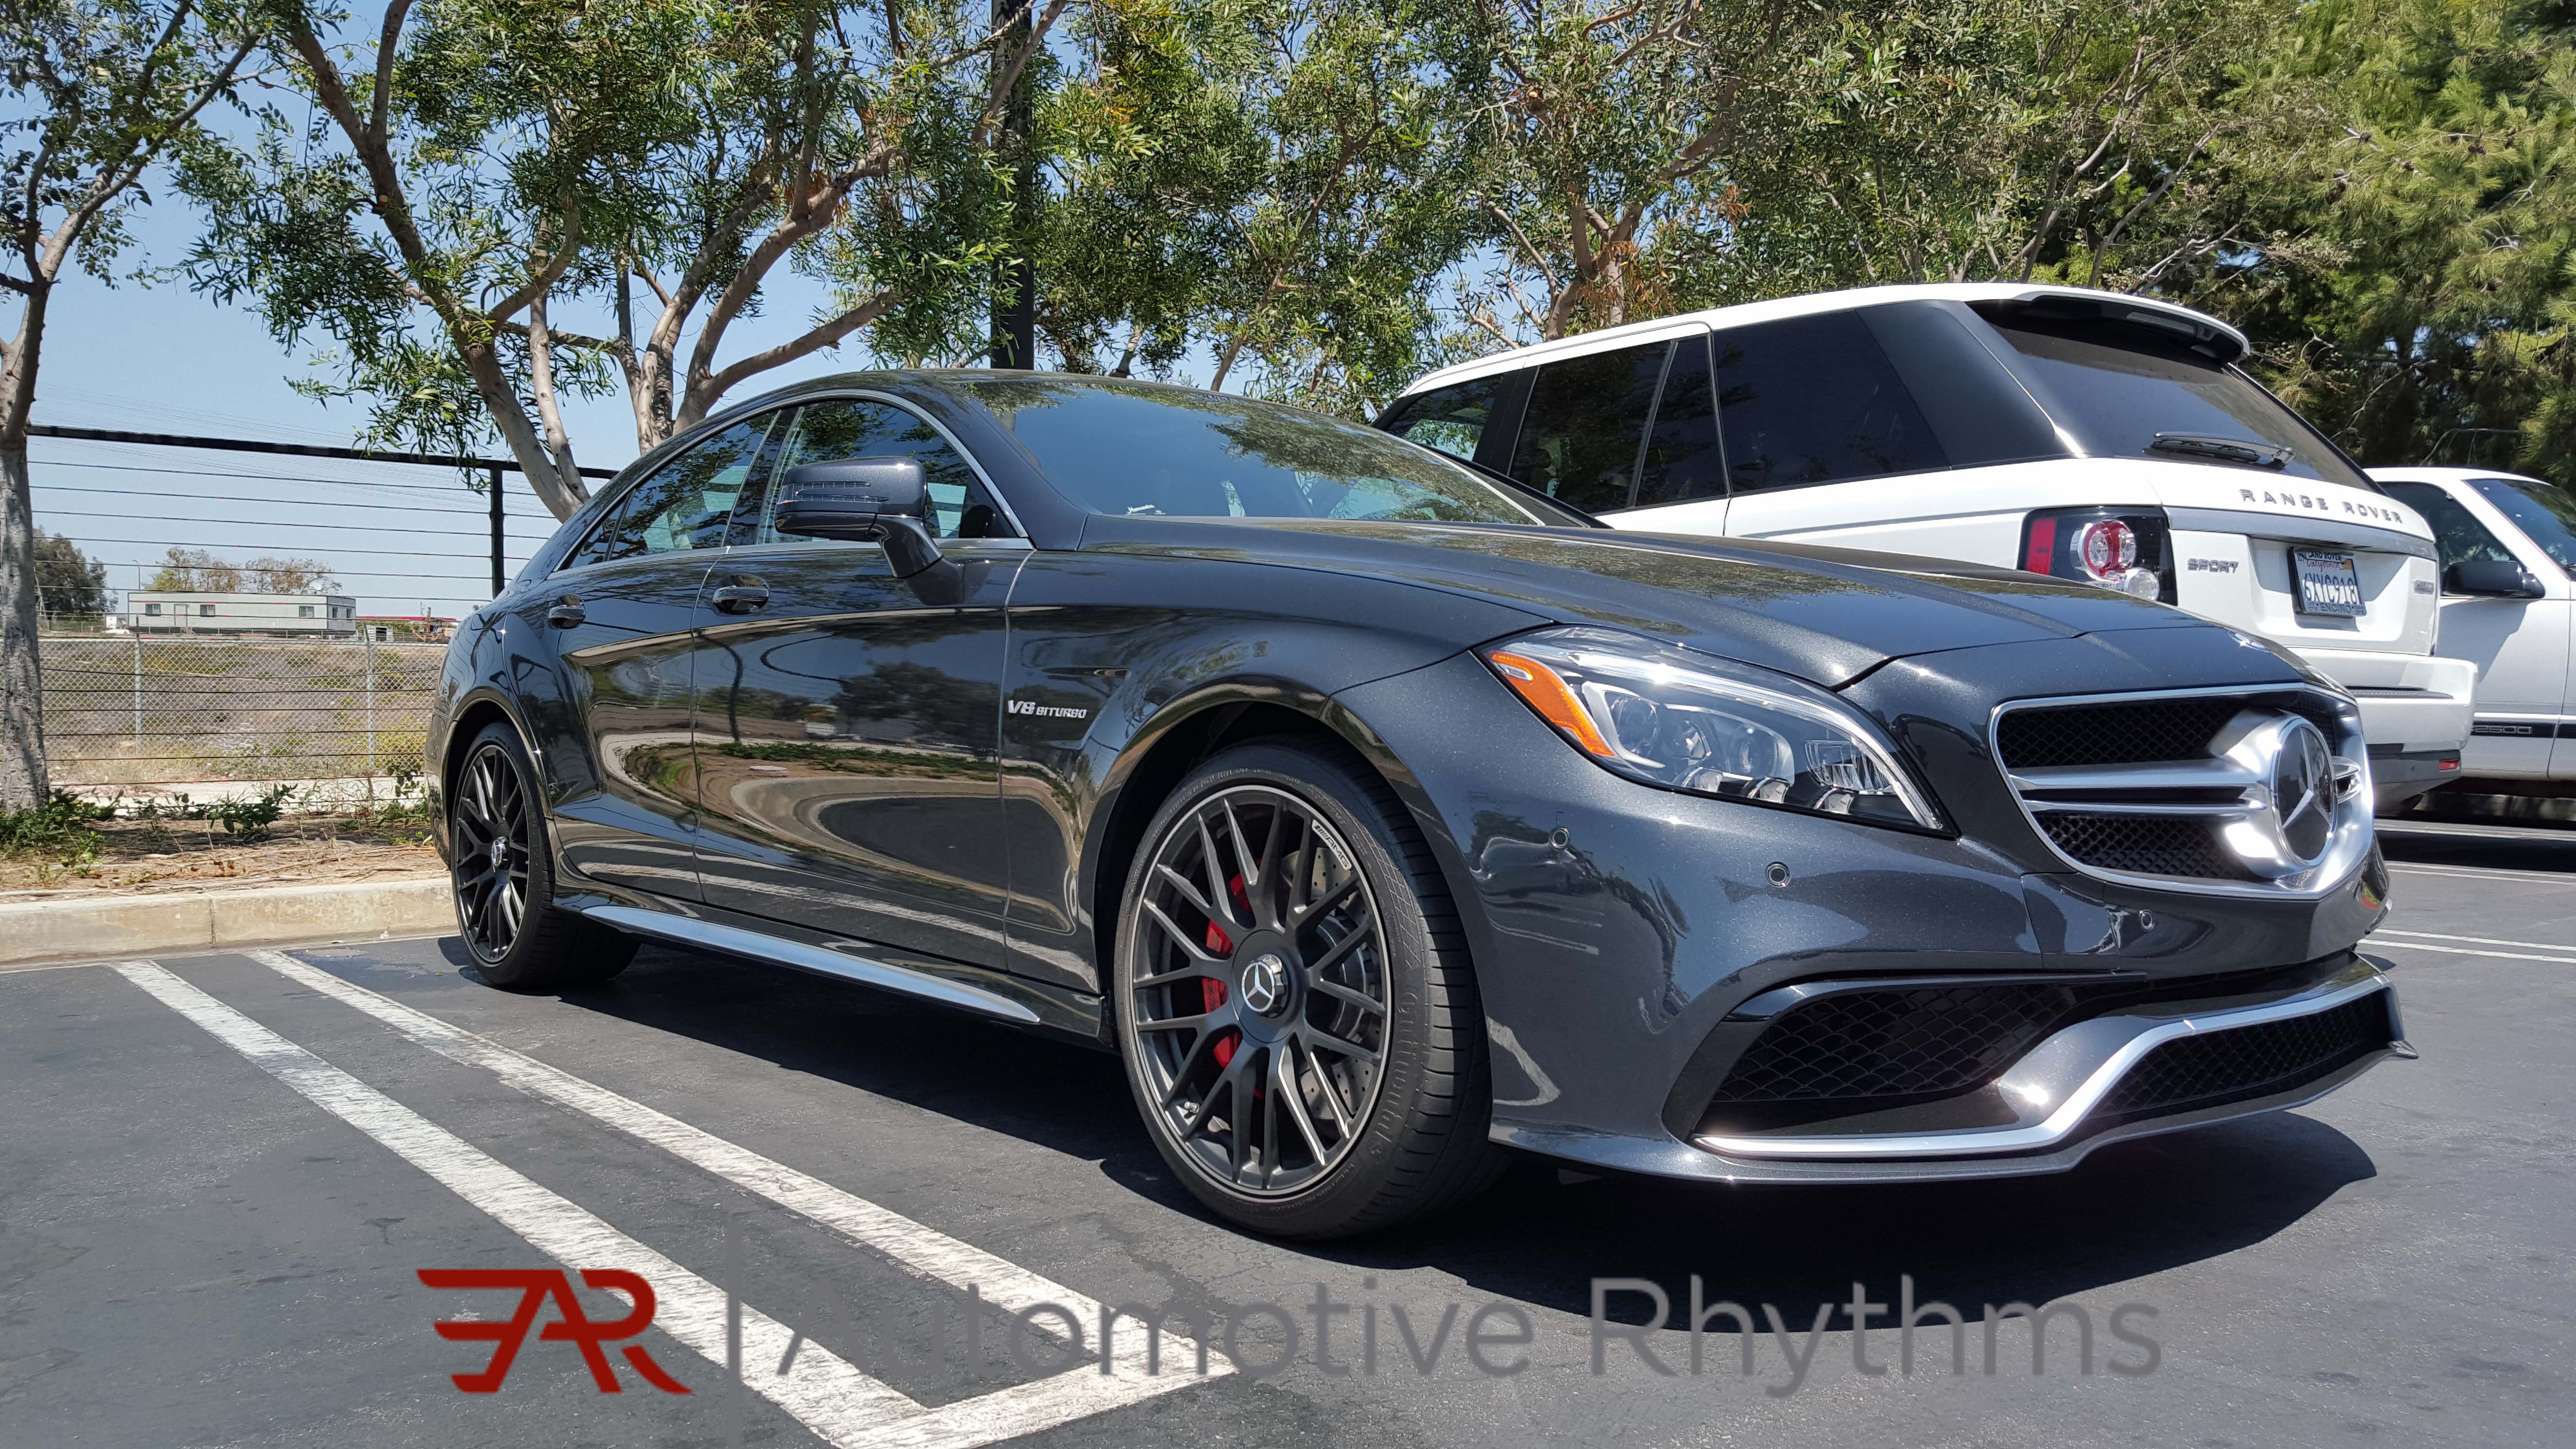 Cali cruising in the 2015 mercedes benz cls63 amg s model for Mercedes benz mercedes